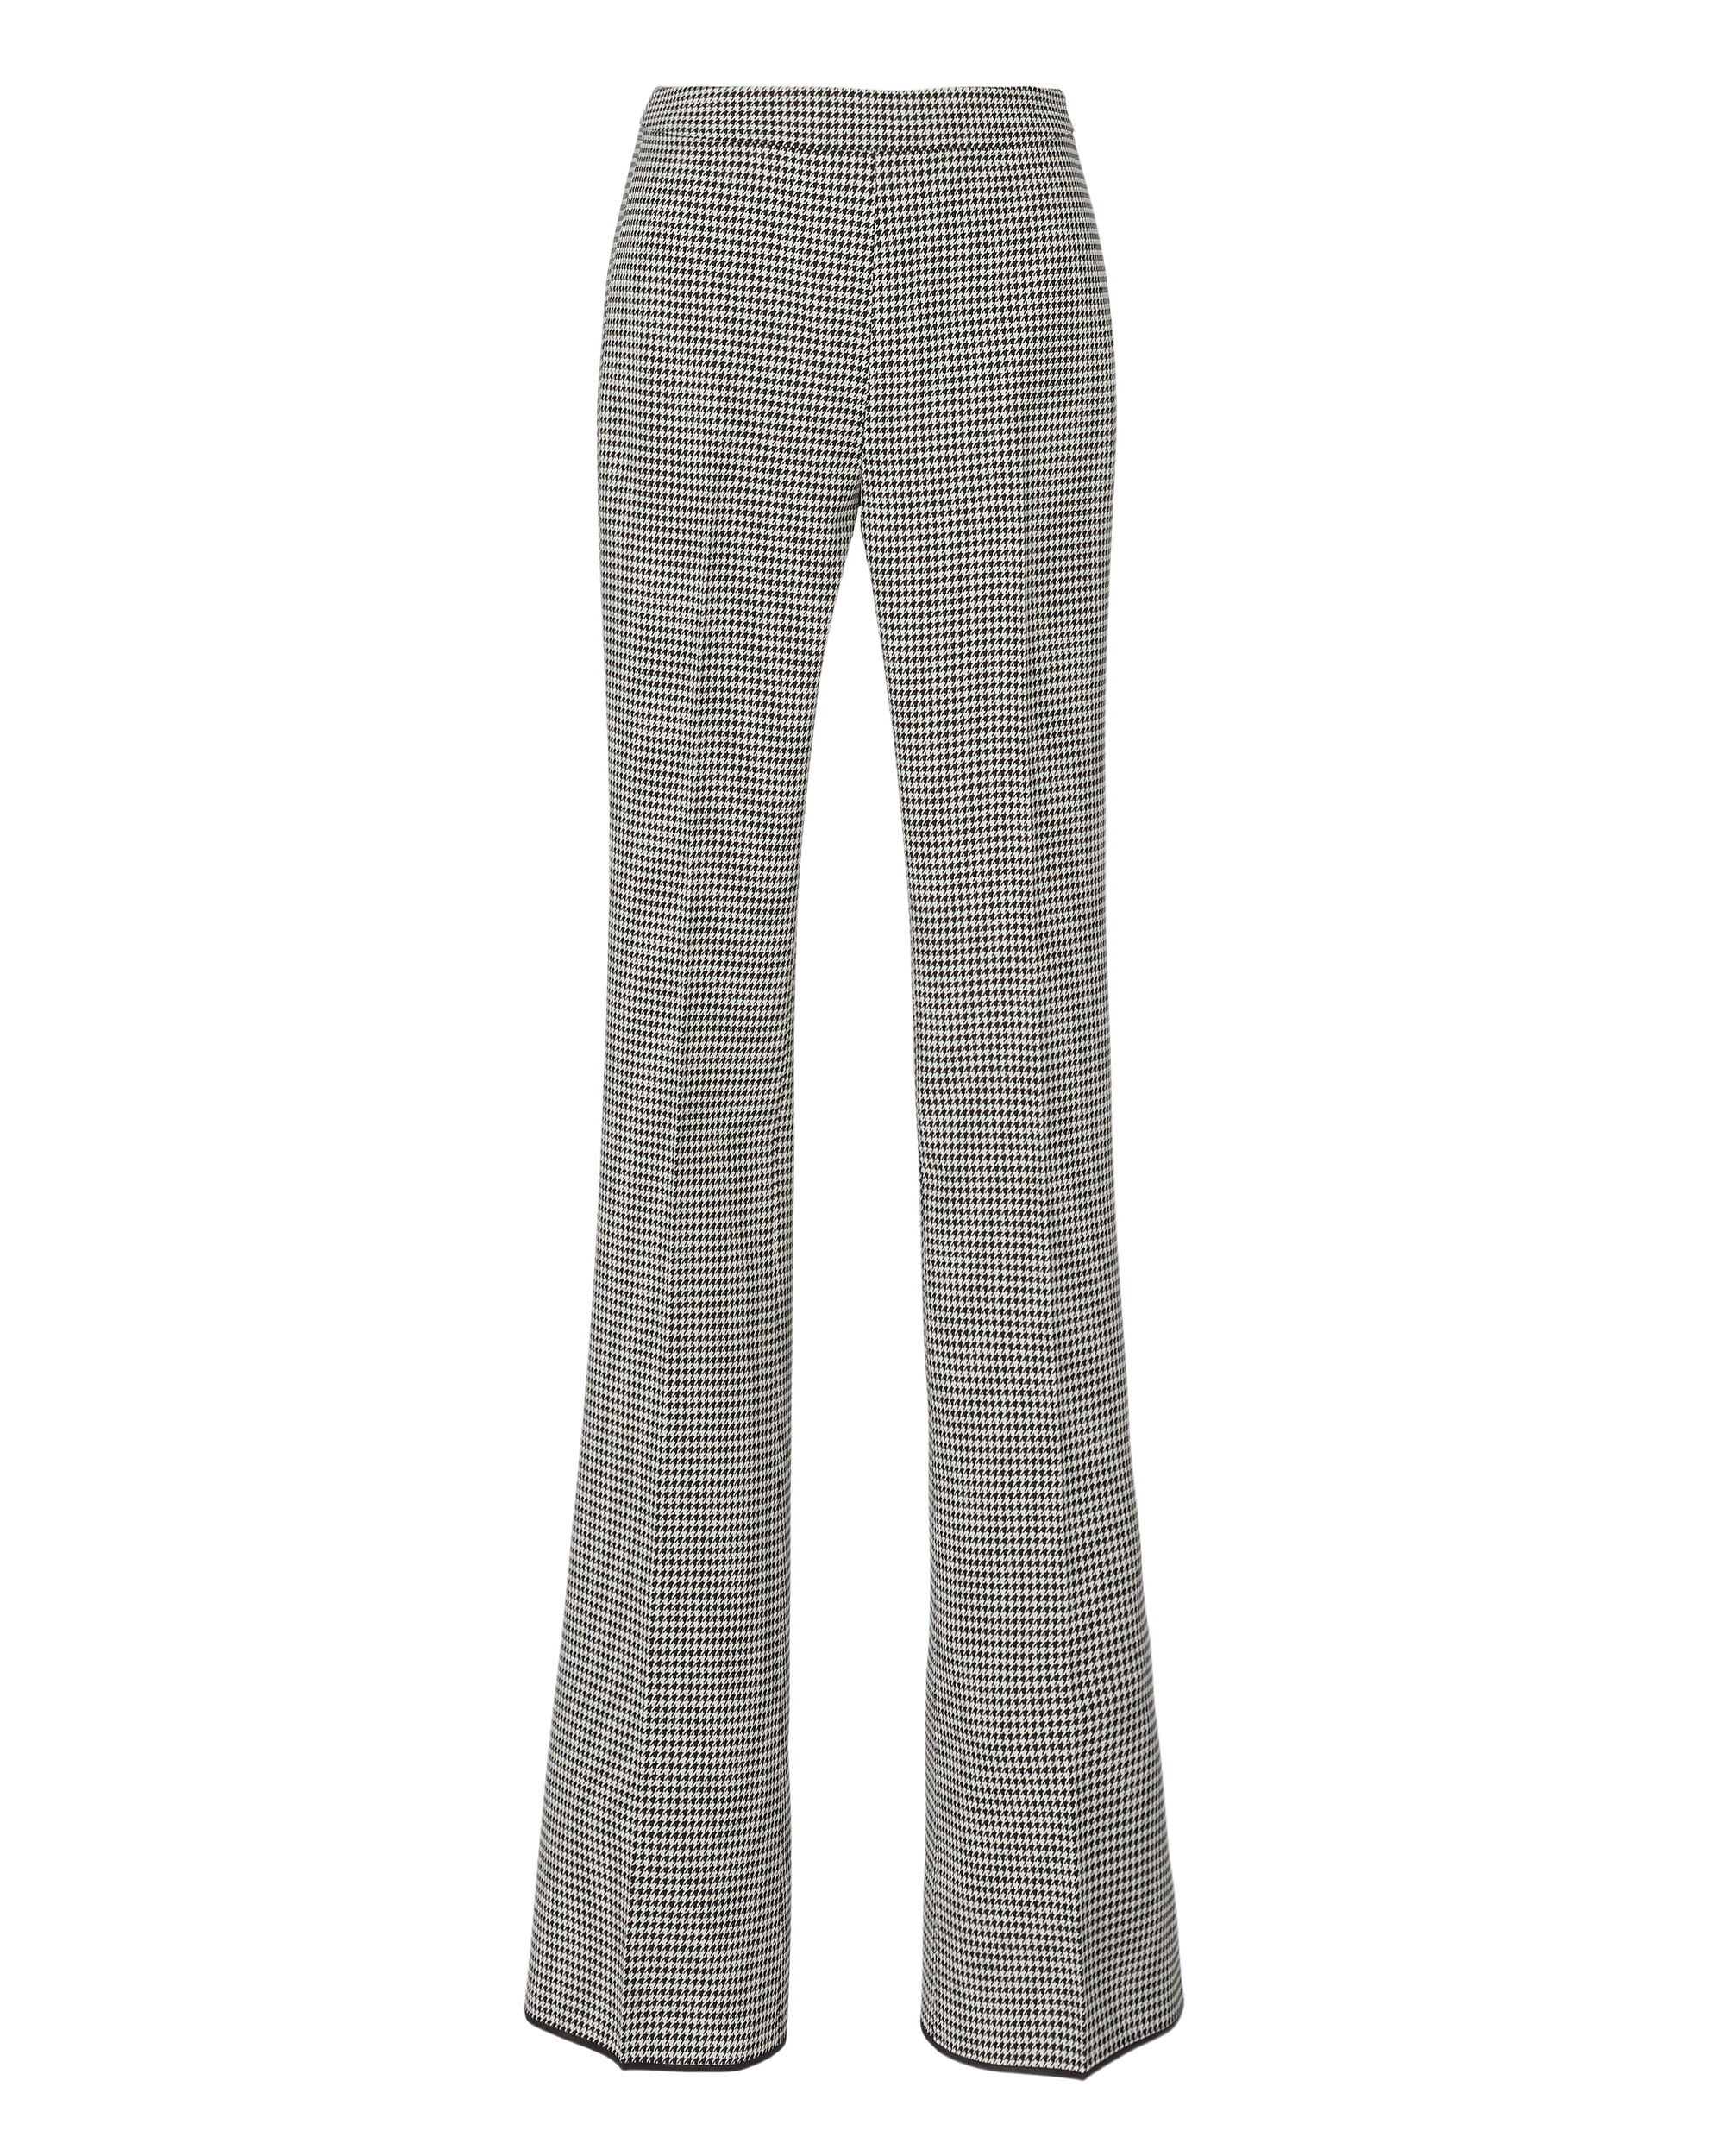 Houndstooth Flare Trousers, PATTERN, hi-res